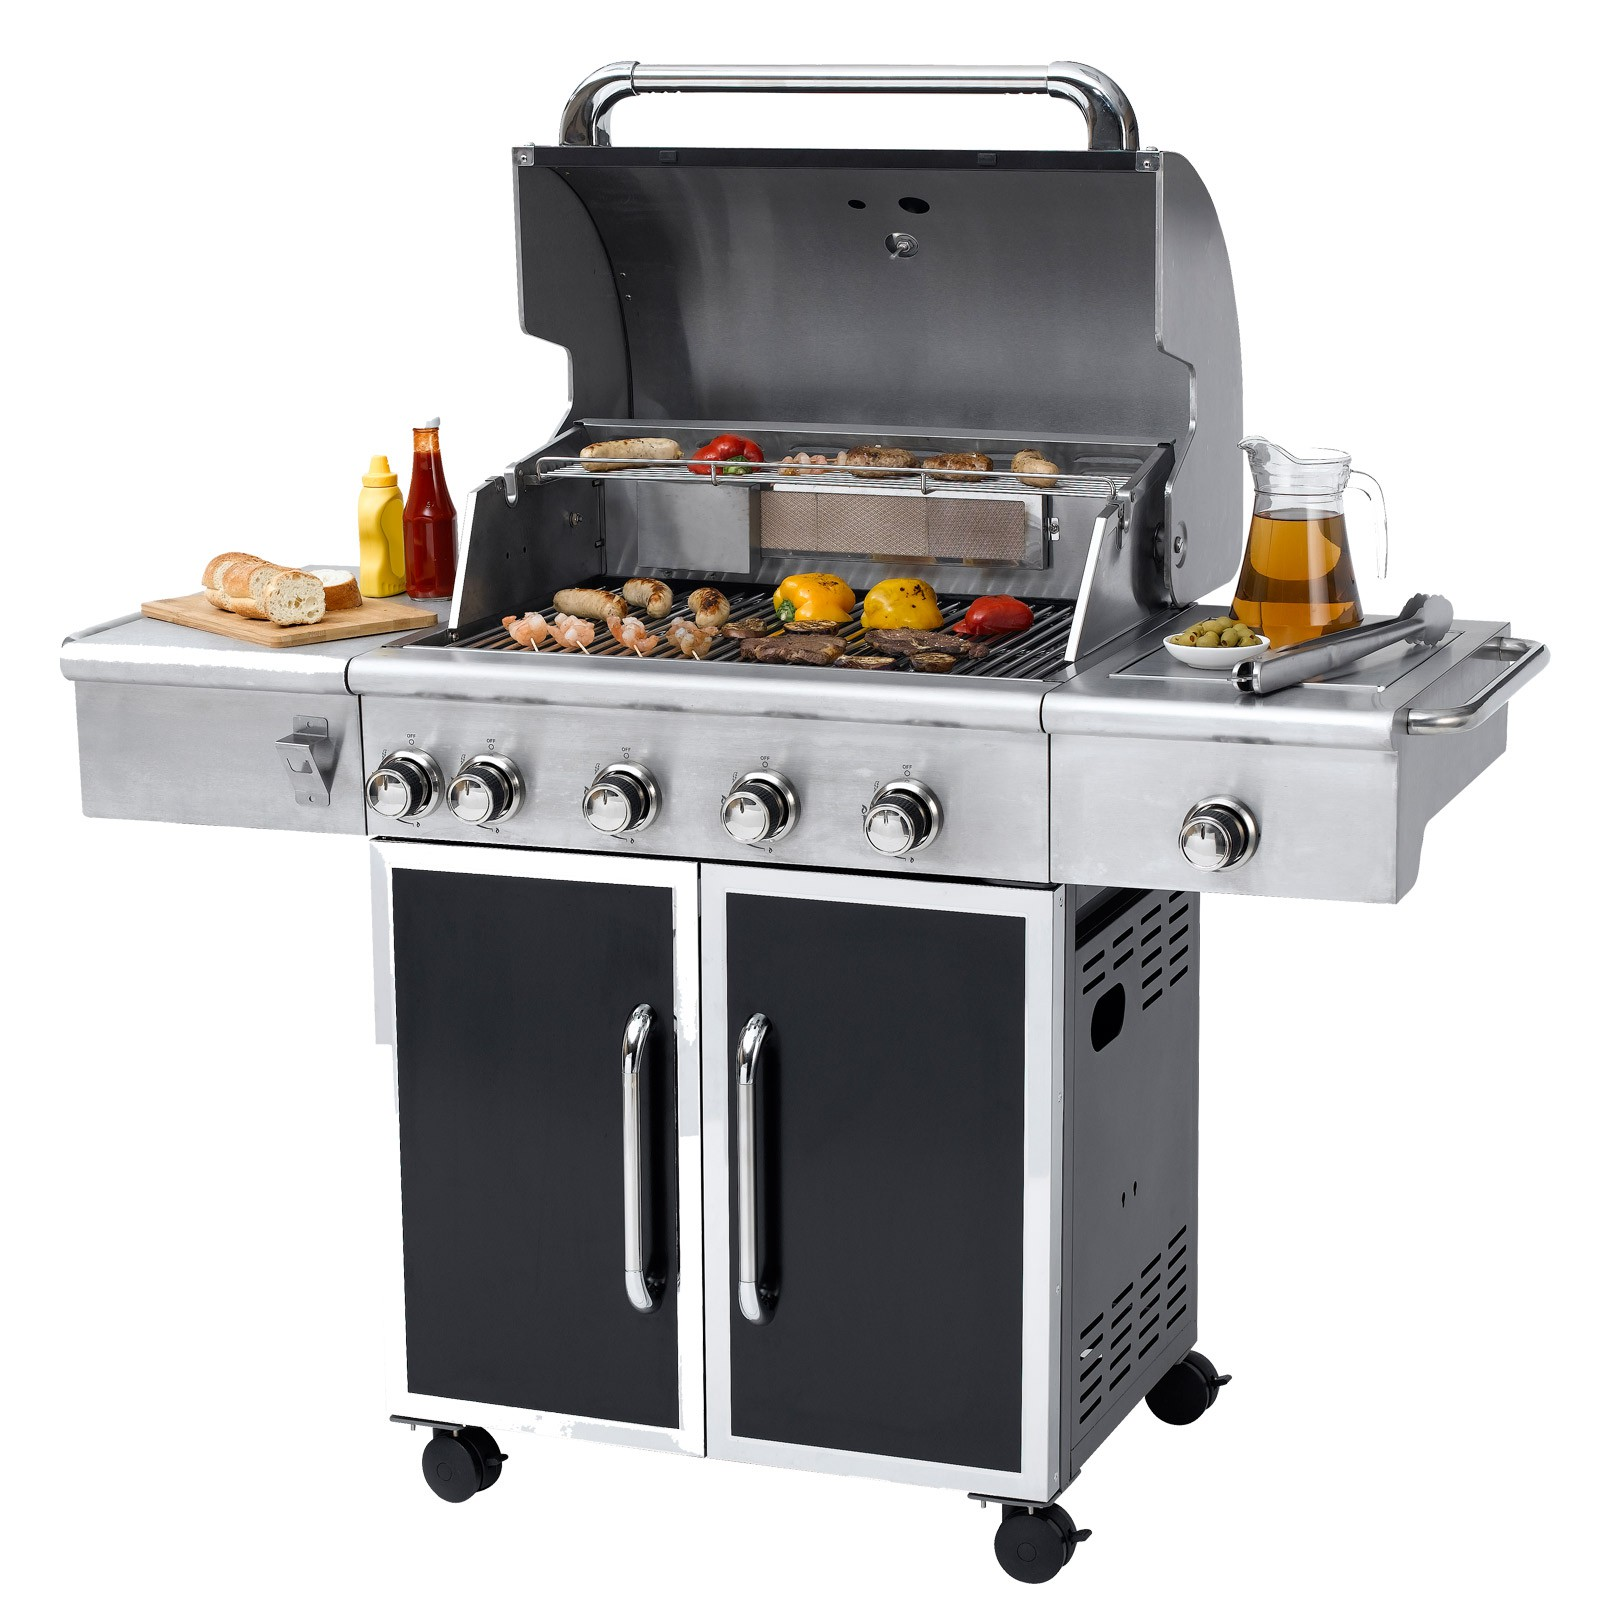 tepro gasgrill grillwagen bbq grill partygrill barbecue manhattan ebay. Black Bedroom Furniture Sets. Home Design Ideas